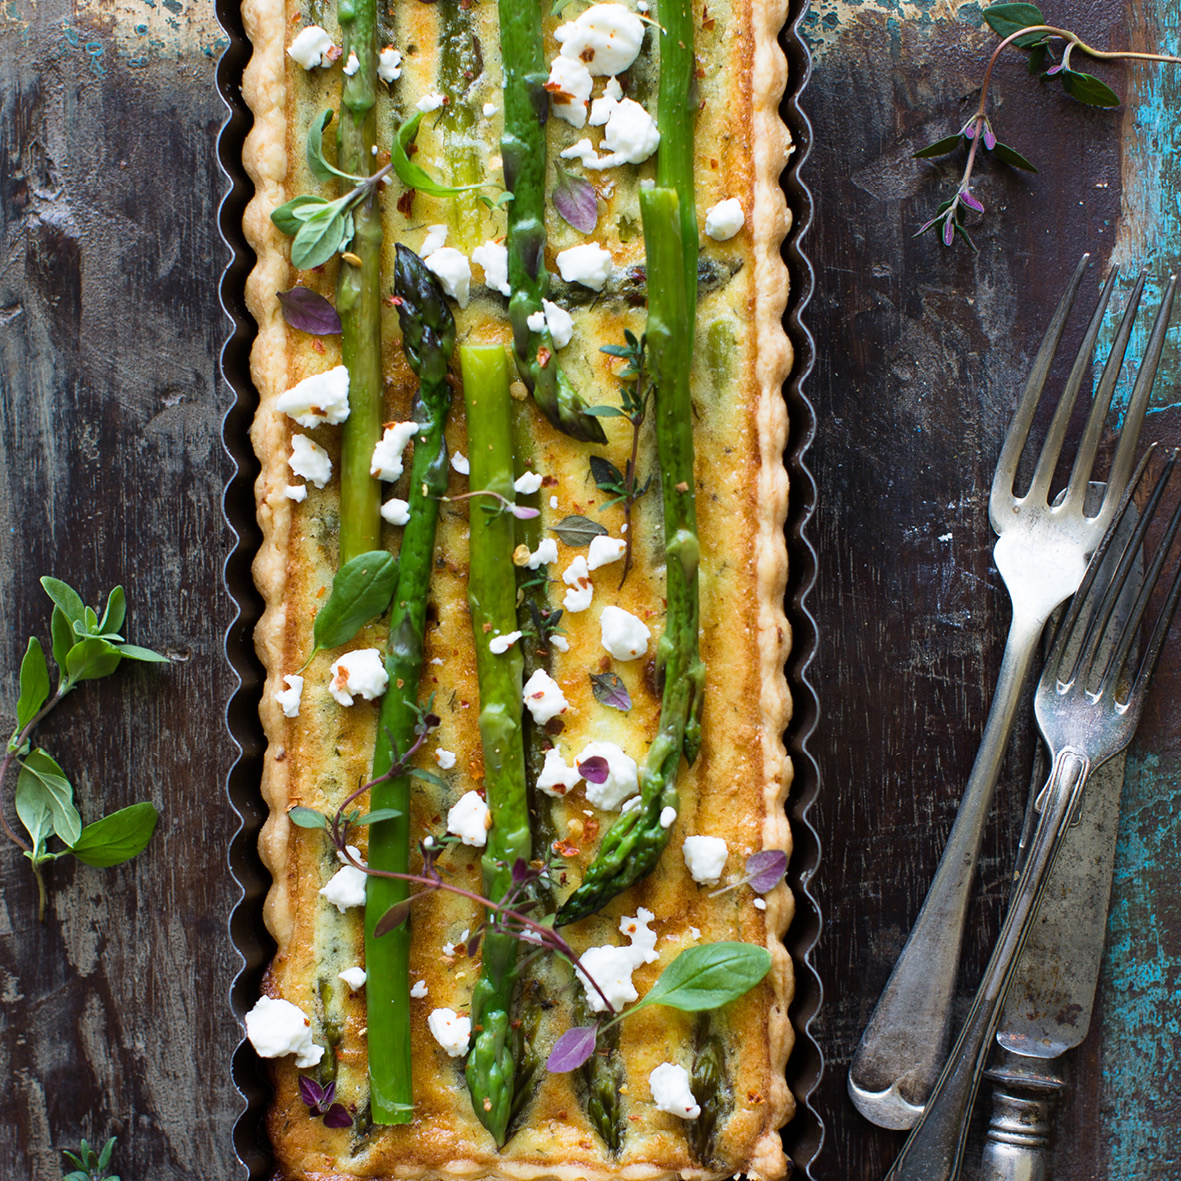 asparagus_tart_with_crumbled_feta_and_walnuts.jpg